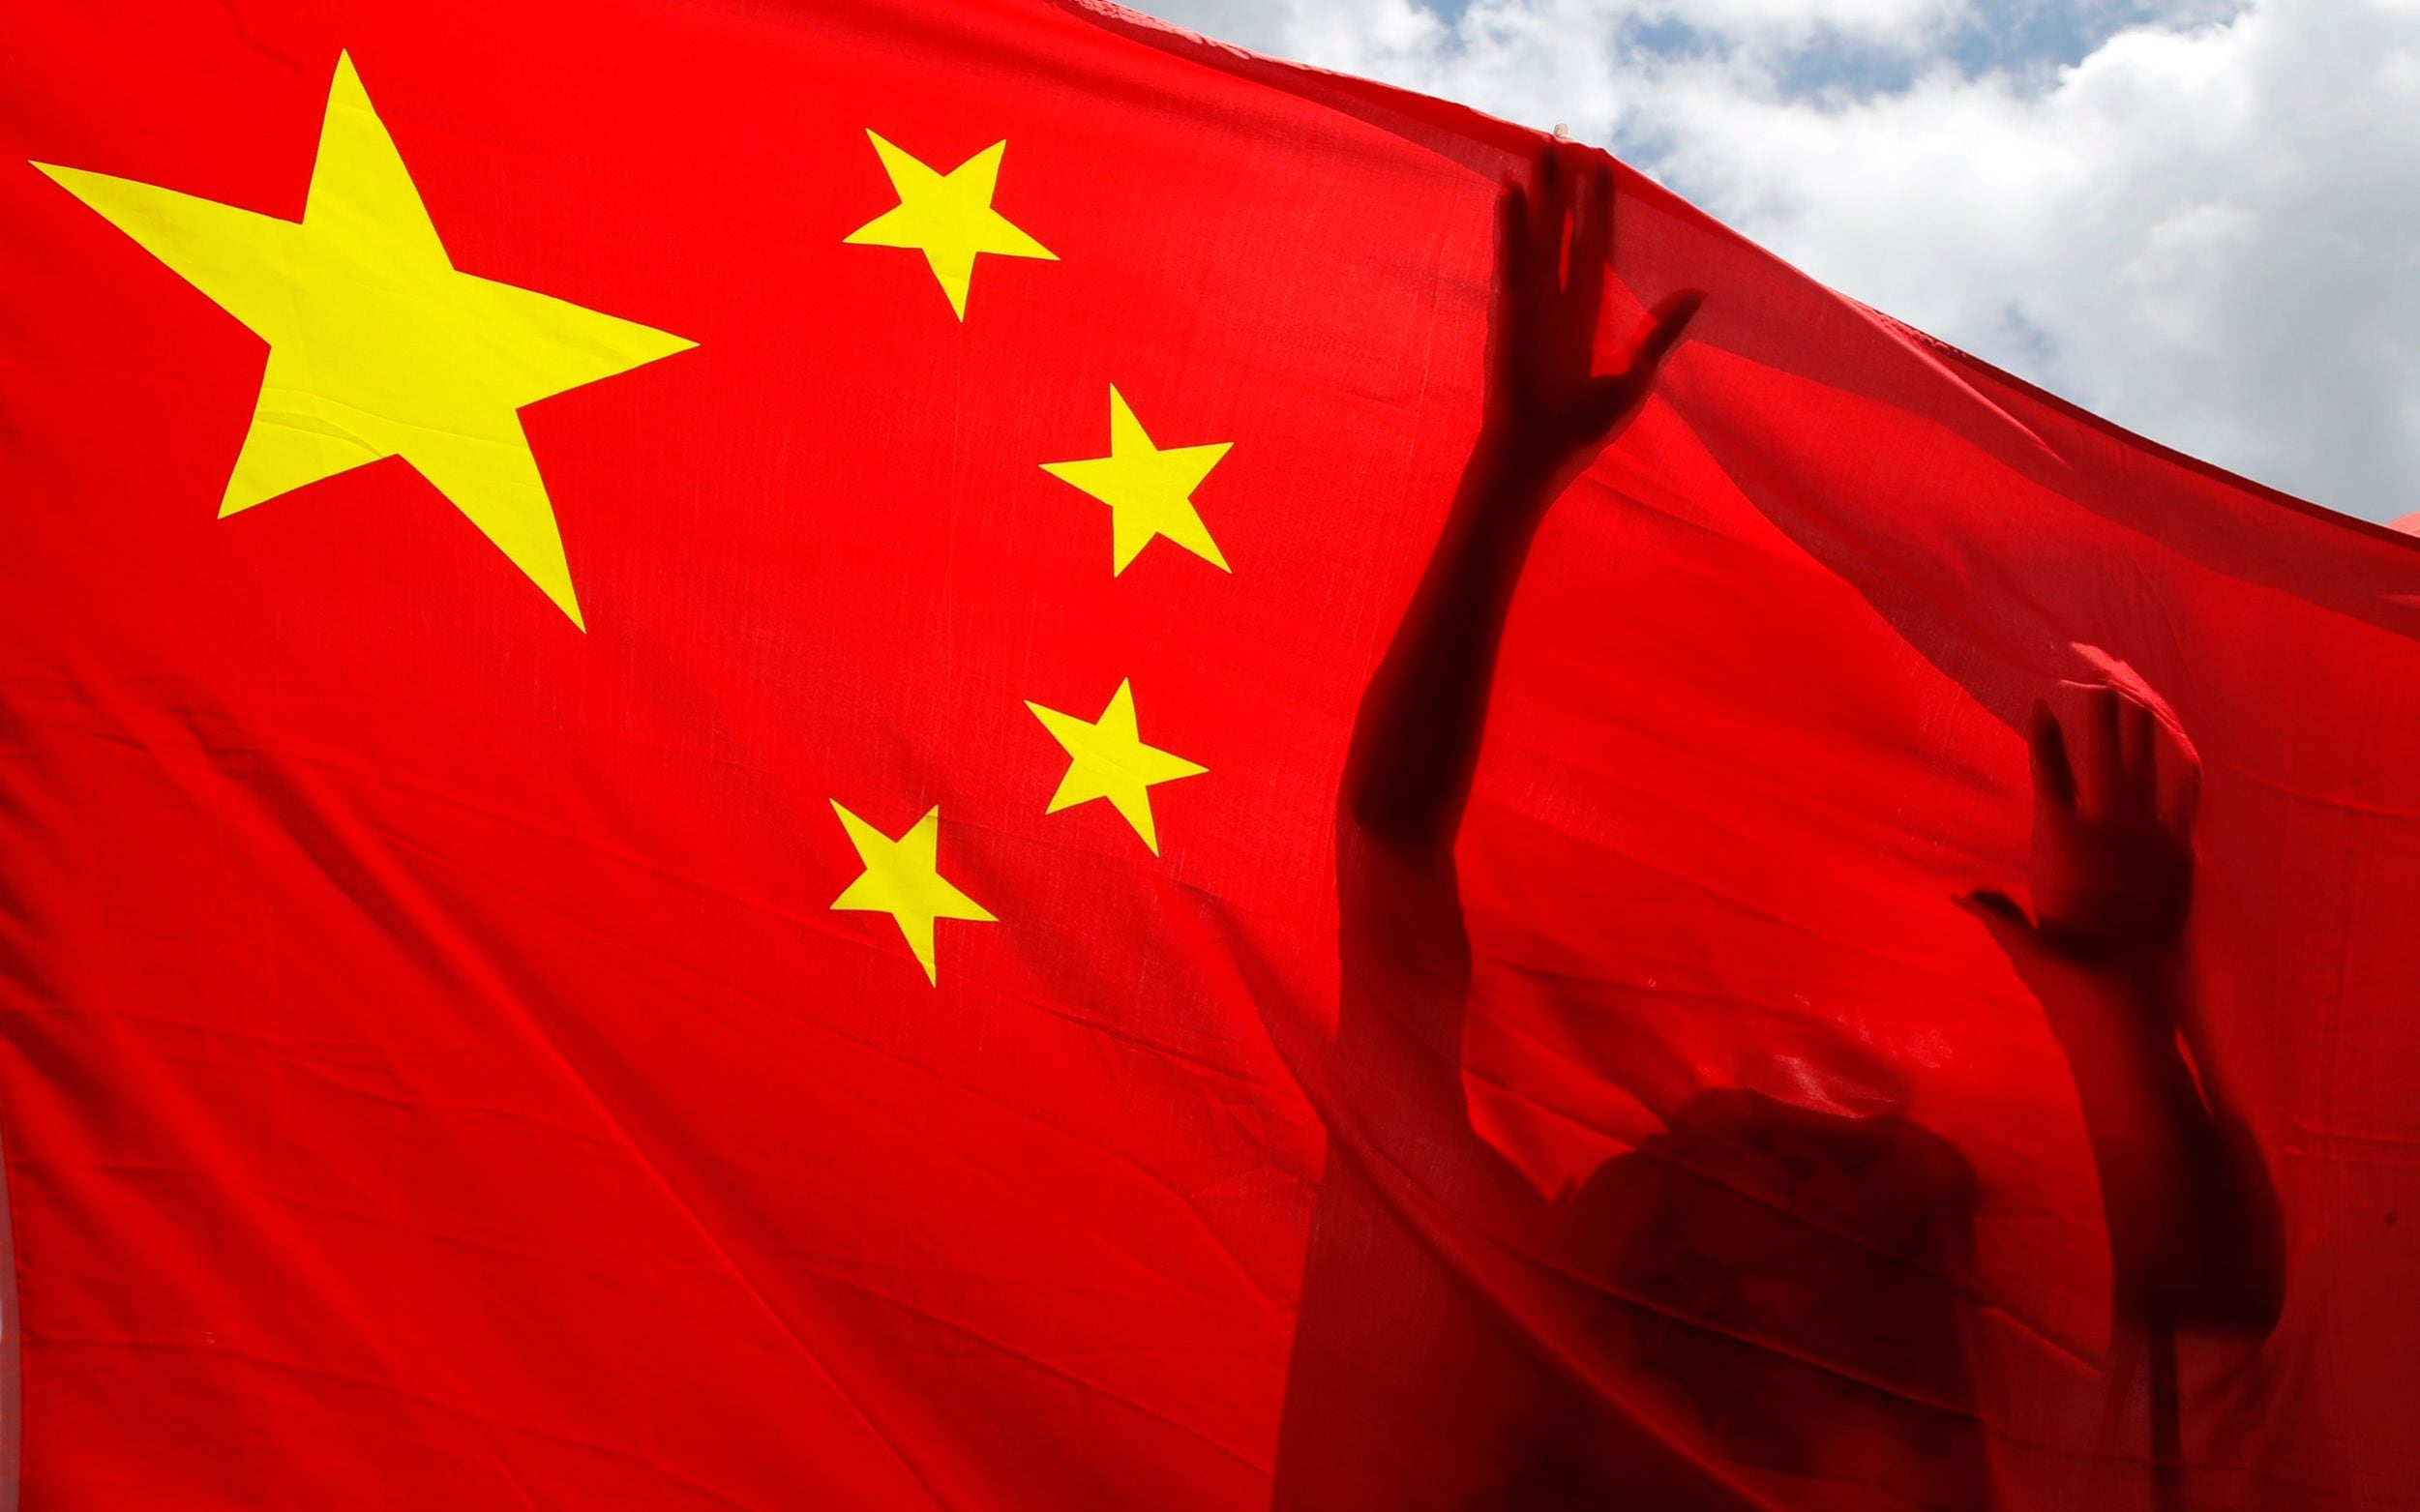 Two French ex-spies on trial accused of espionage for China